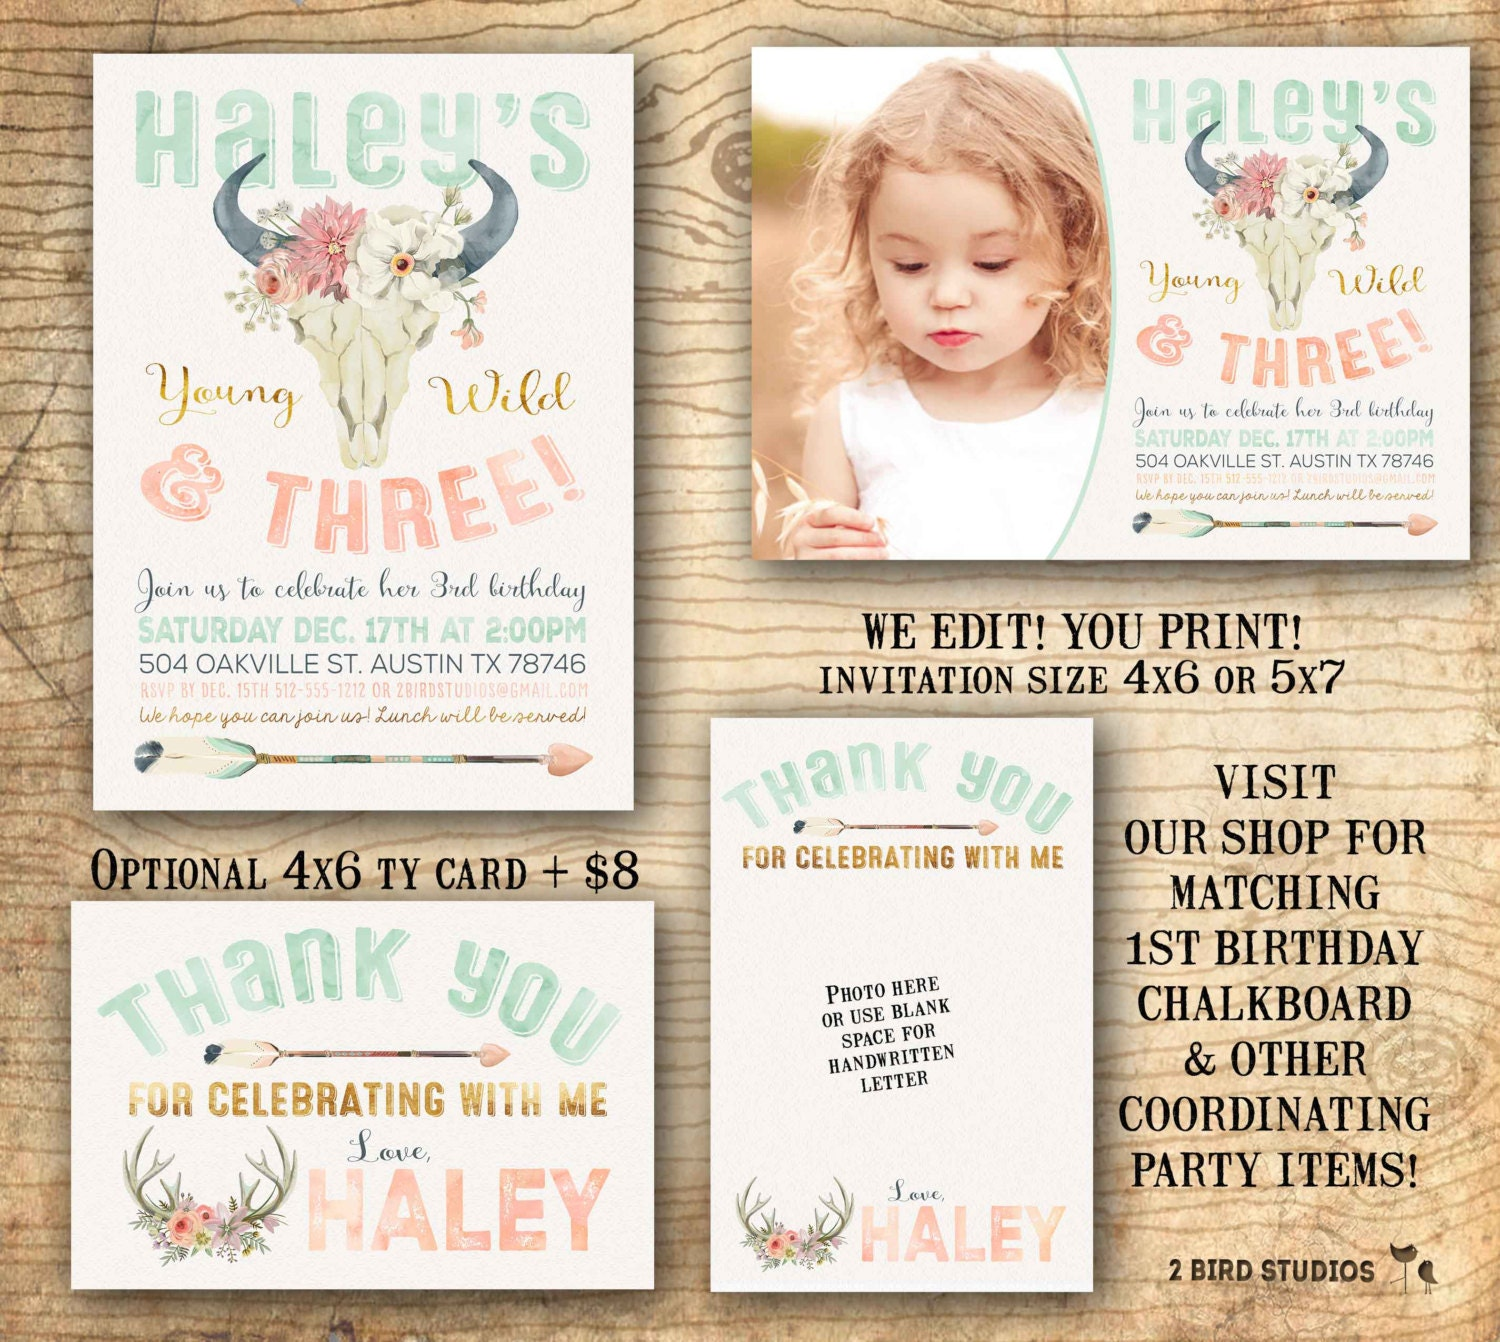 Young wild and three invitation 3rd birthday party